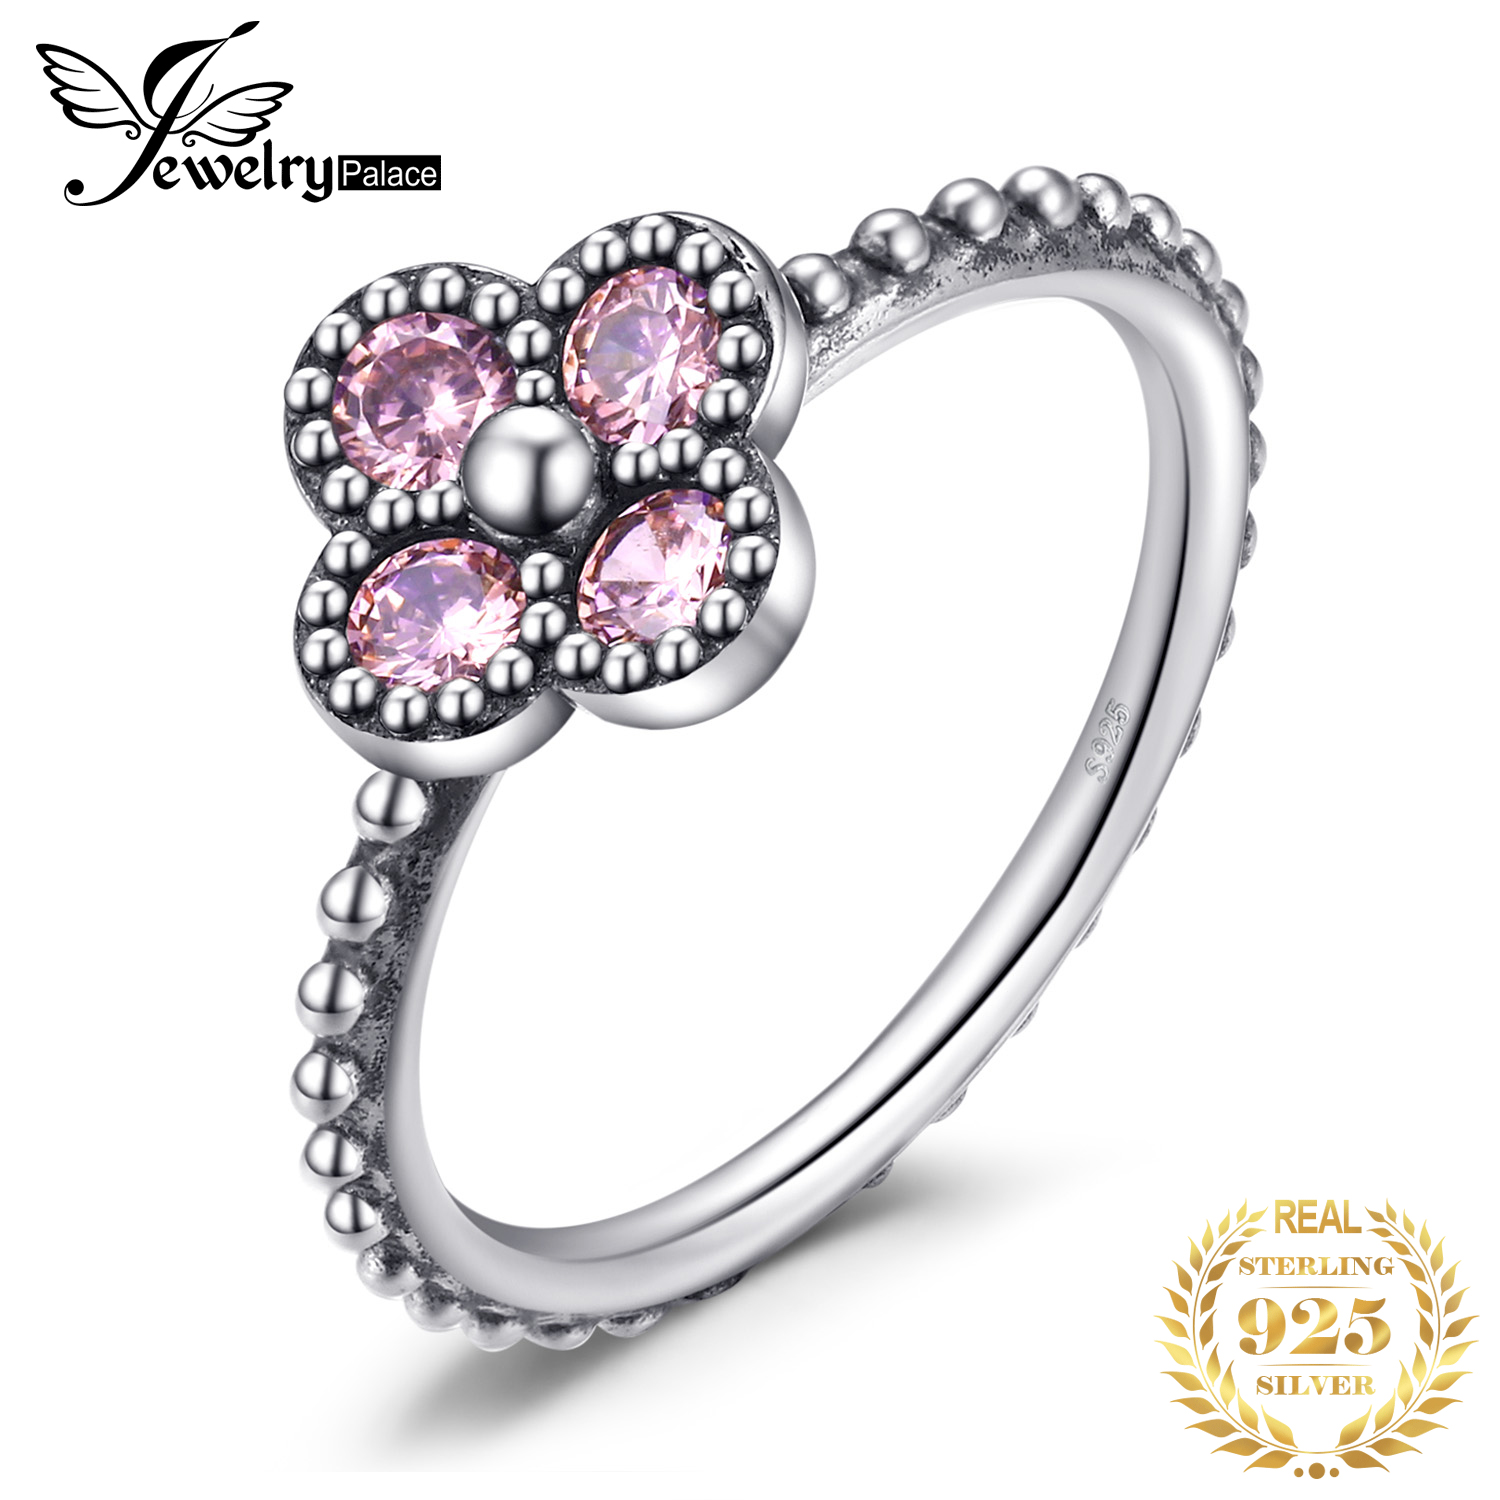 Jewelrypalace 925 Sterling Silver Rings Glitter Pink Murano Glass Flora Coctail Rings Flower Unique Fashion Jewelry Women Gifts